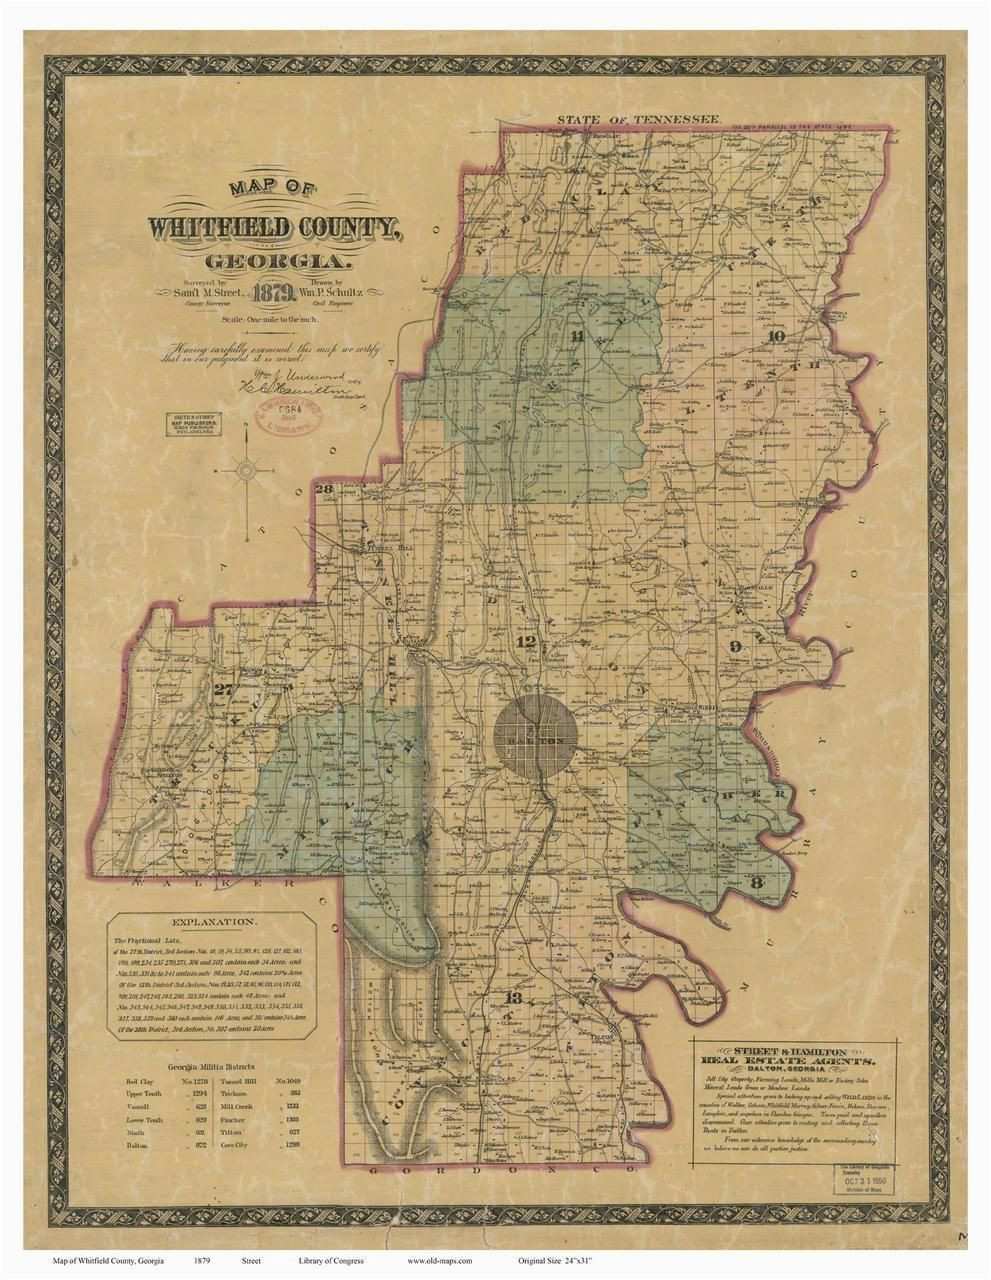 Historical Maps Of Georgia Whitfield County 1879 Georgia Old Maps Of Georgia Pinterest